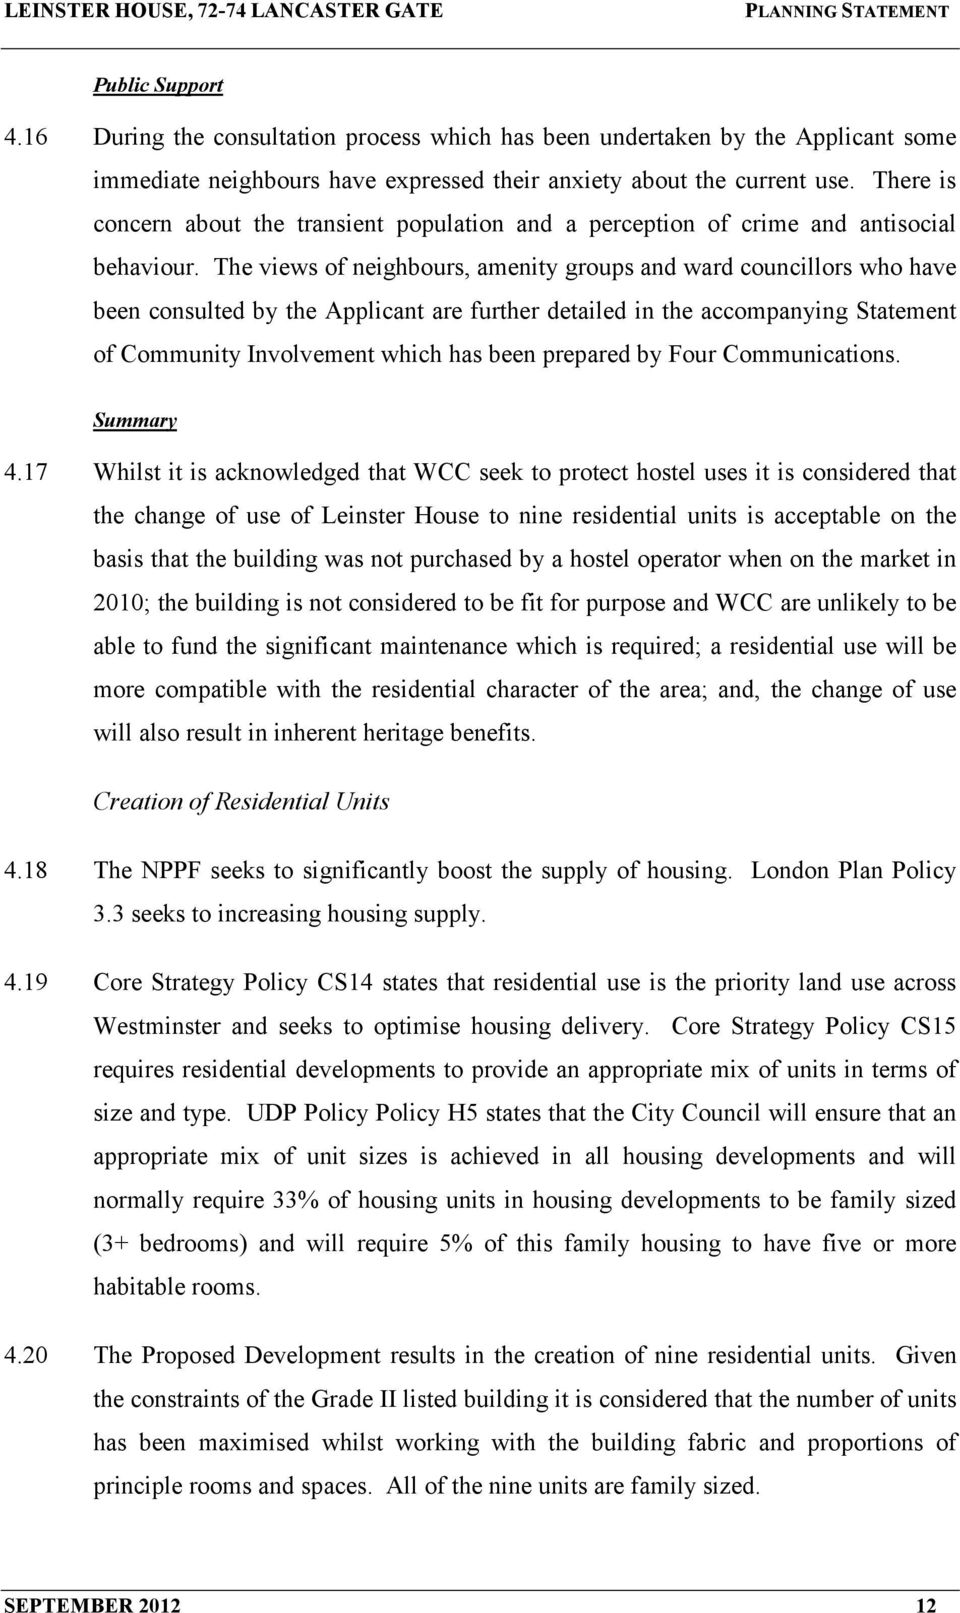 The views of neighbours, amenity groups and ward councillors who have been consulted by the Applicant are further detailed in the accompanying Statement of Community Involvement which has been